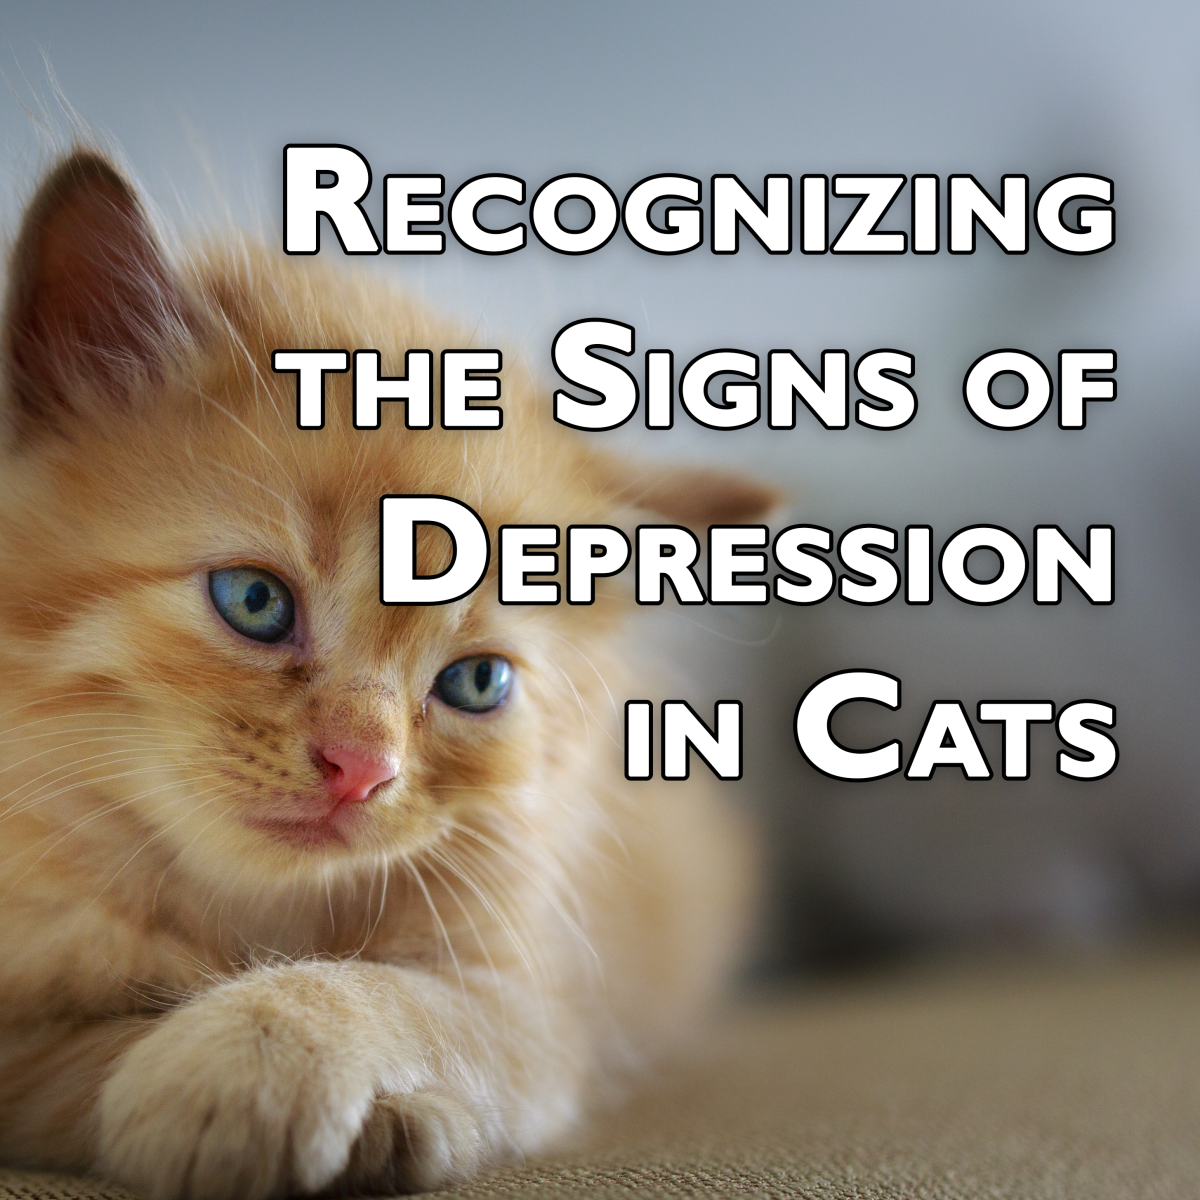 10 Signs and Symptoms of Depression in Cats